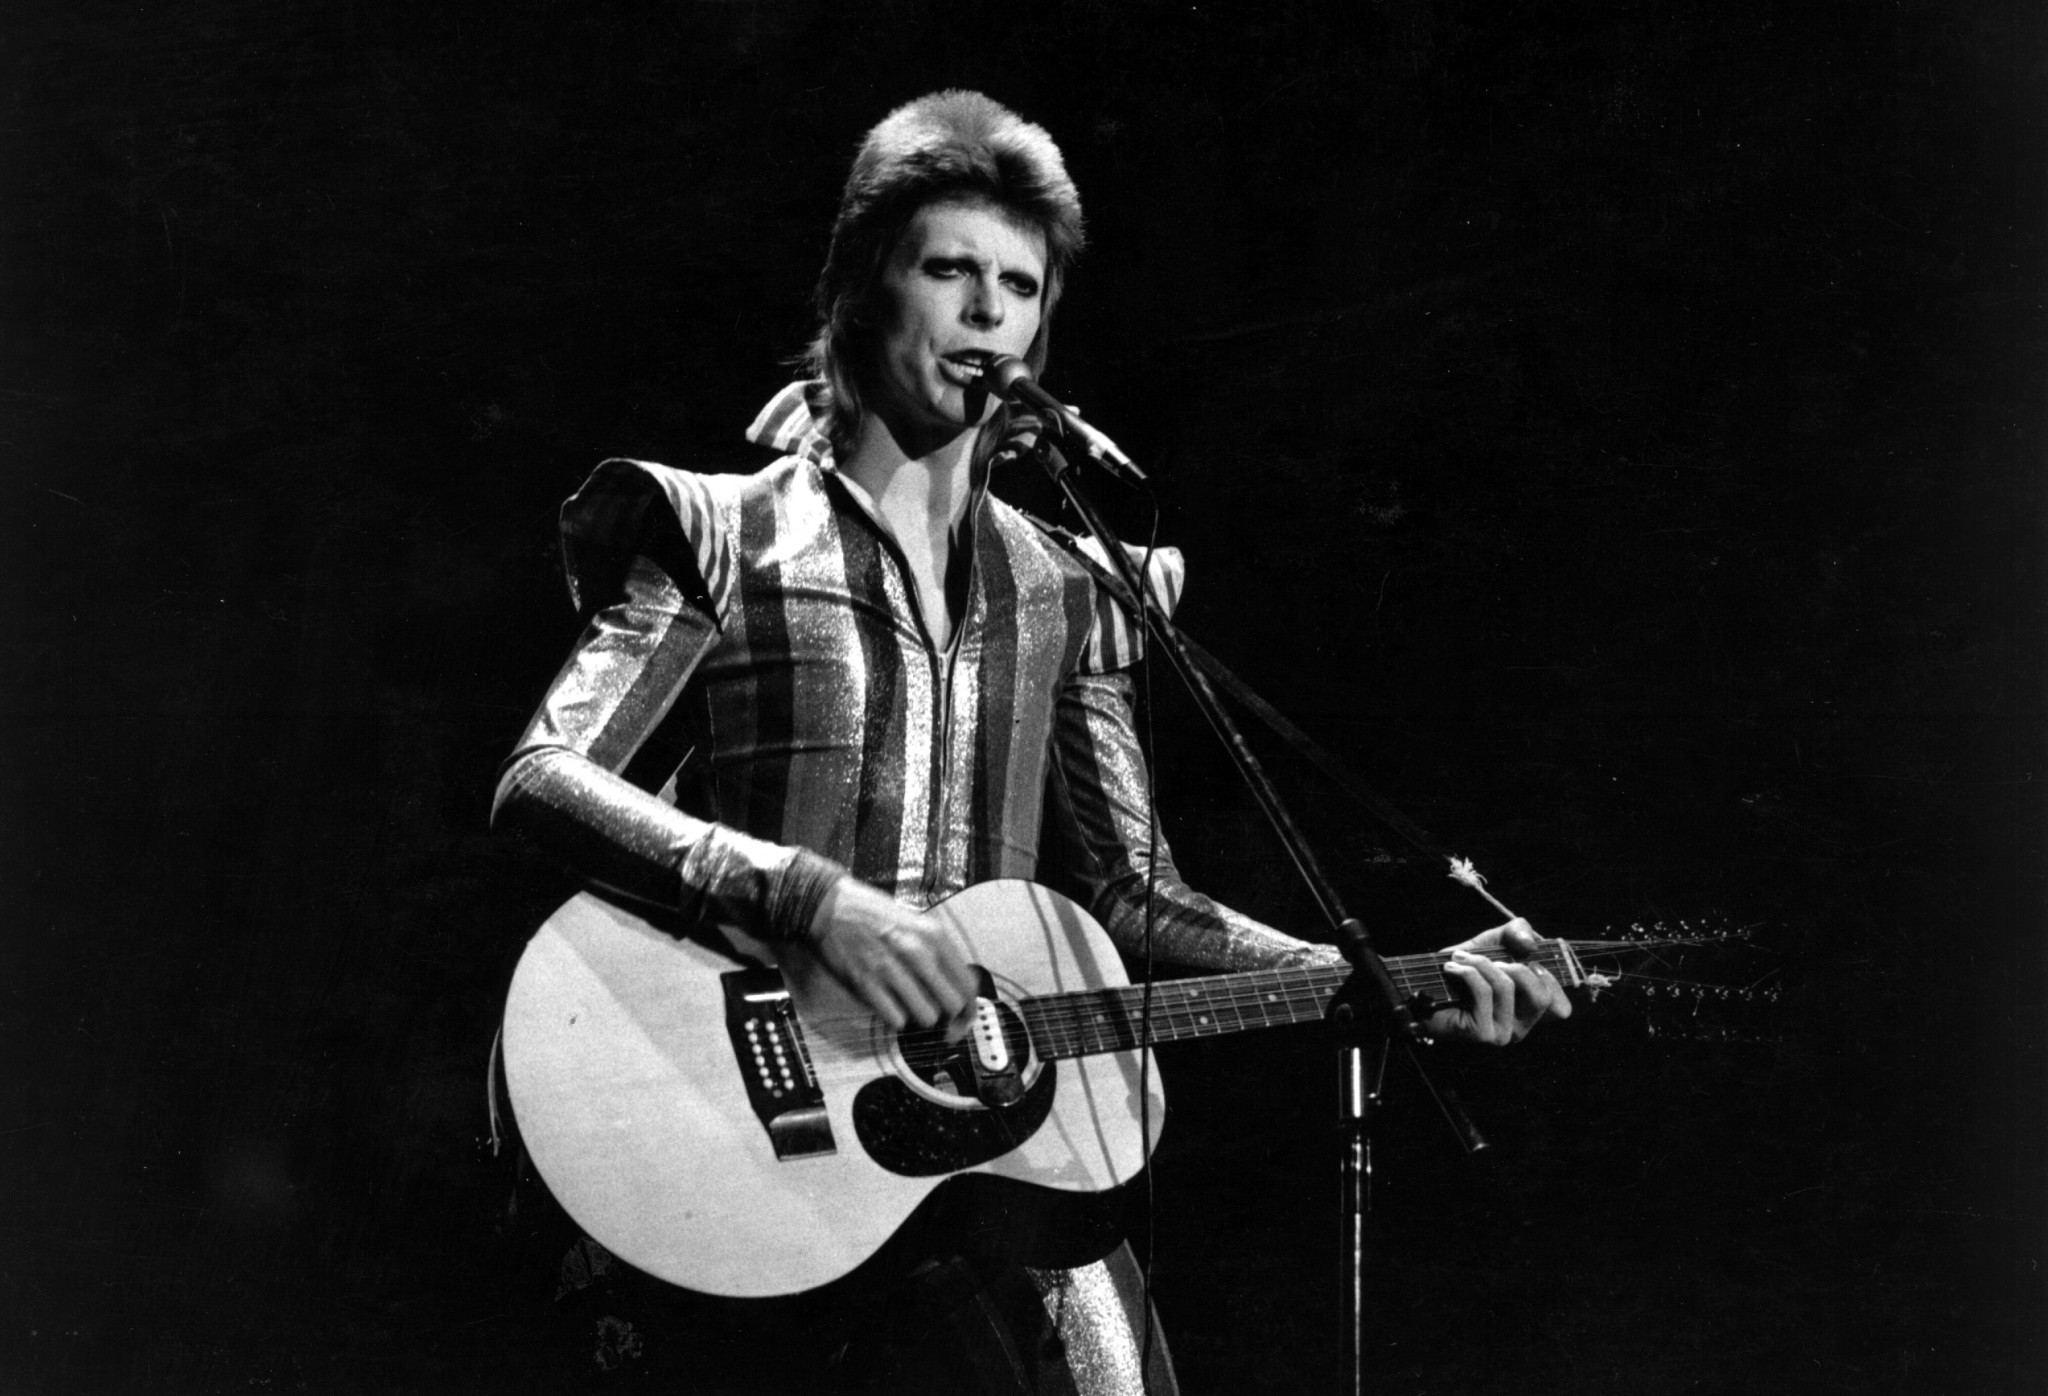 David Bowie performs his final concert as Ziggy Stardust at the Hammersmith Odeon, London